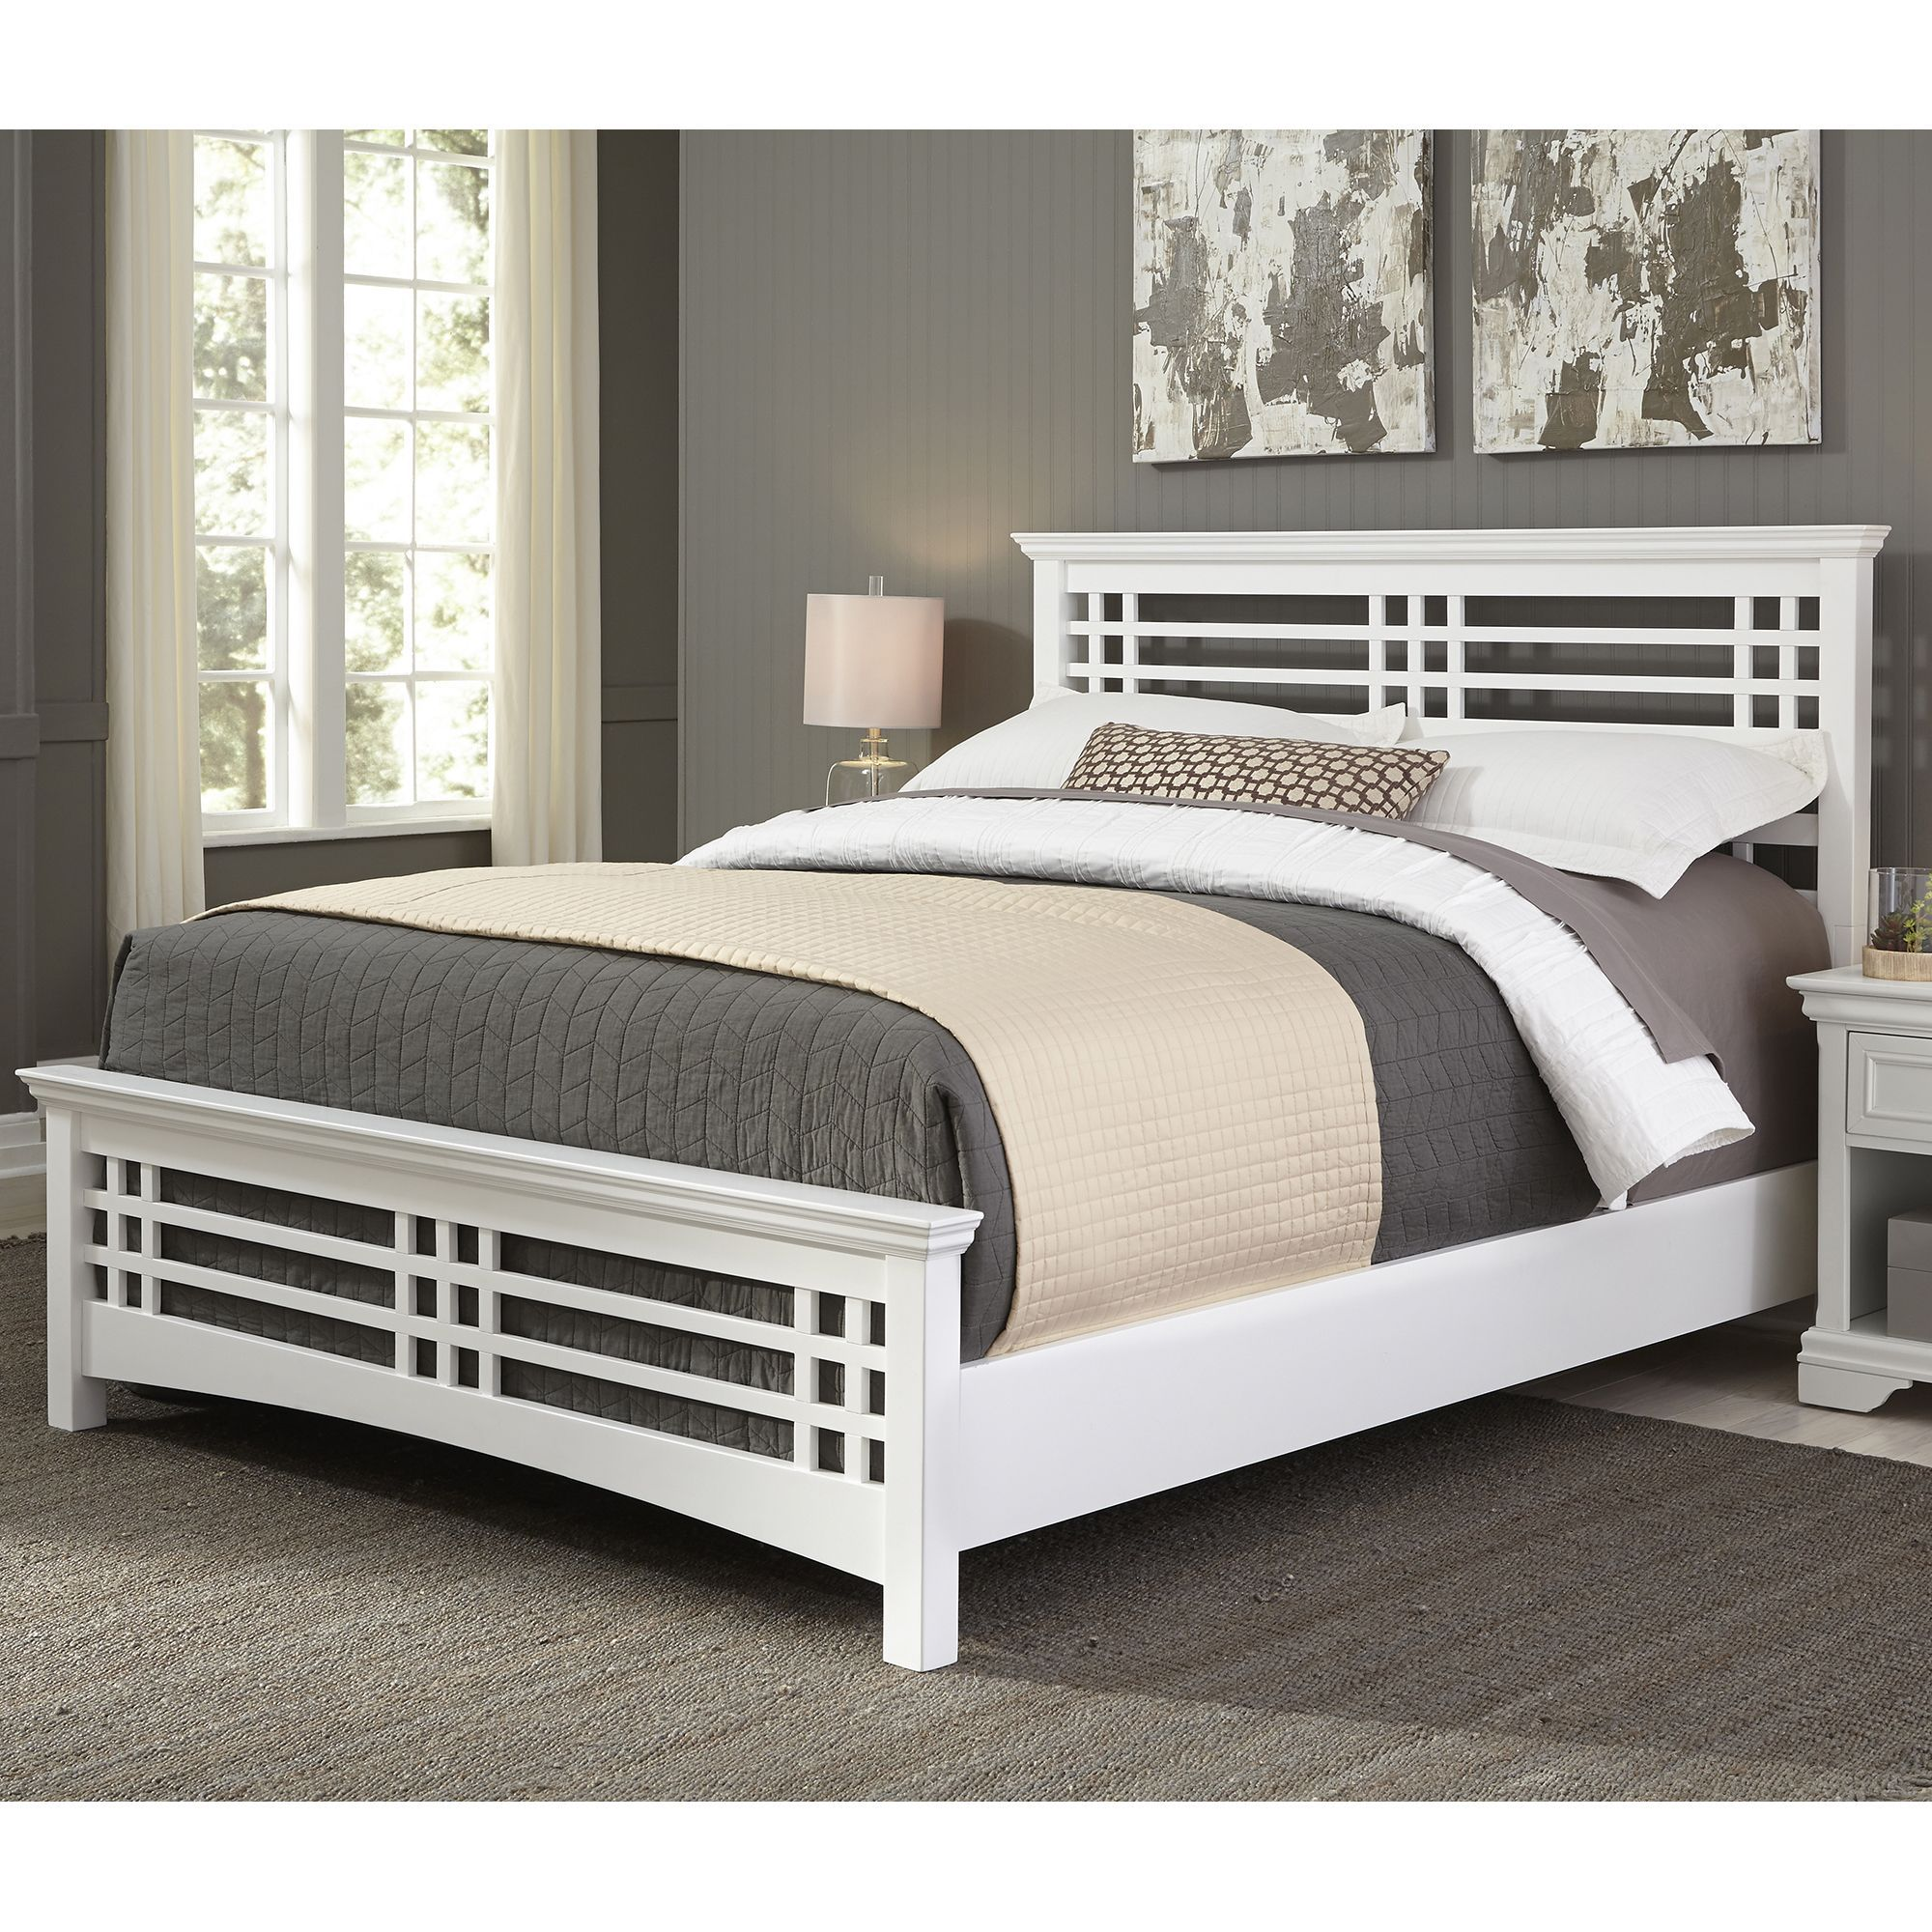 avery complete bed with wood frame and mission style design full